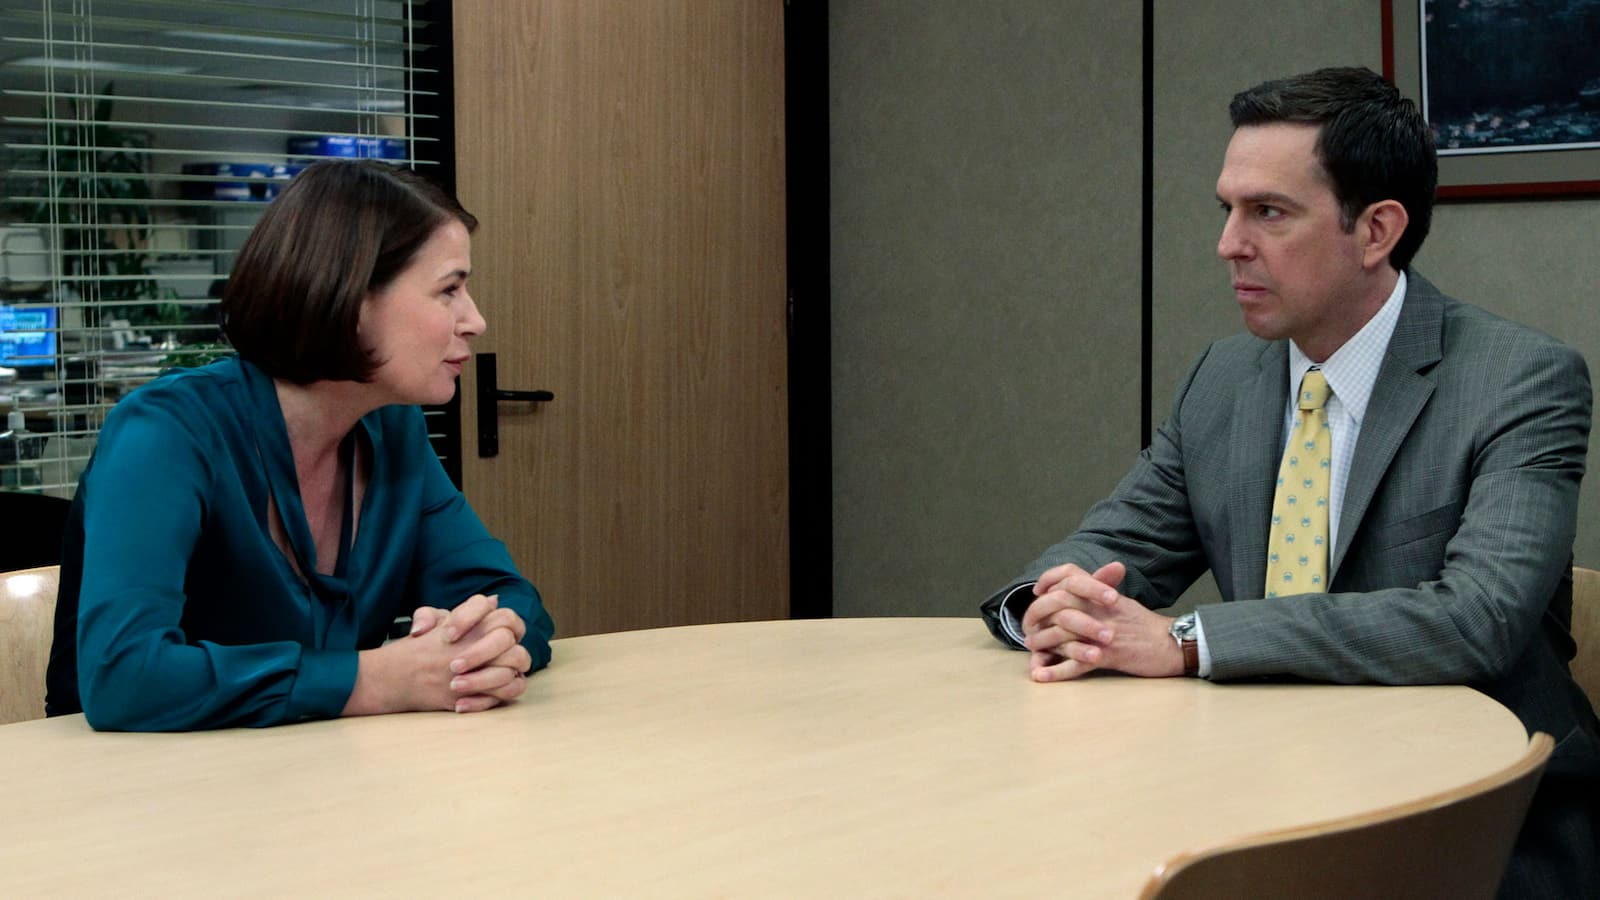 the-office/sesong-8/episode-9